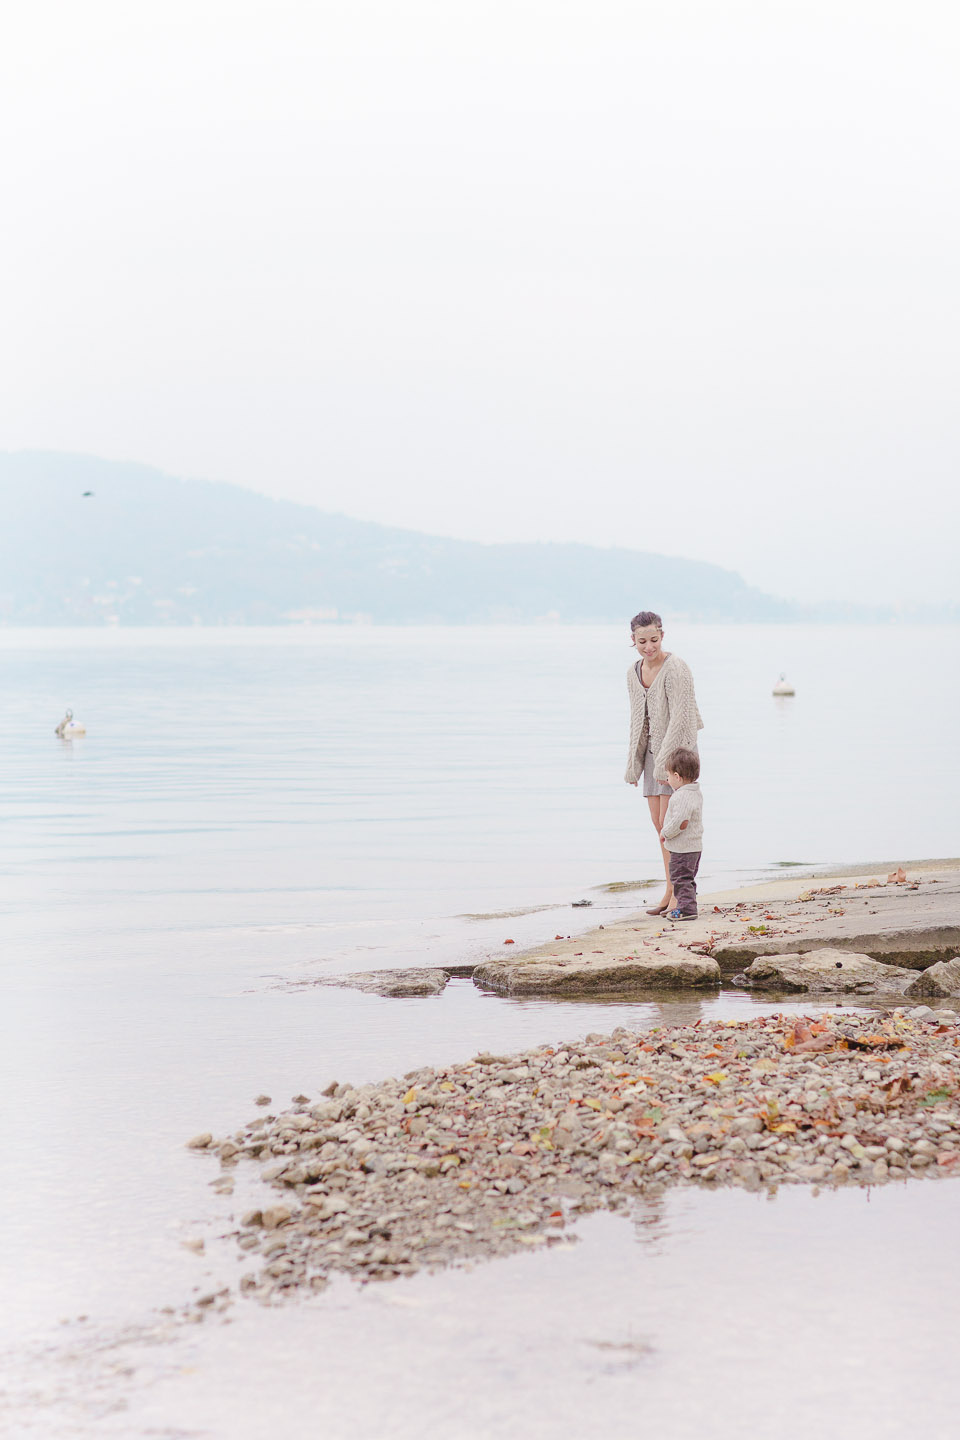 Blanccoco_Photographe_famille_annecy-10